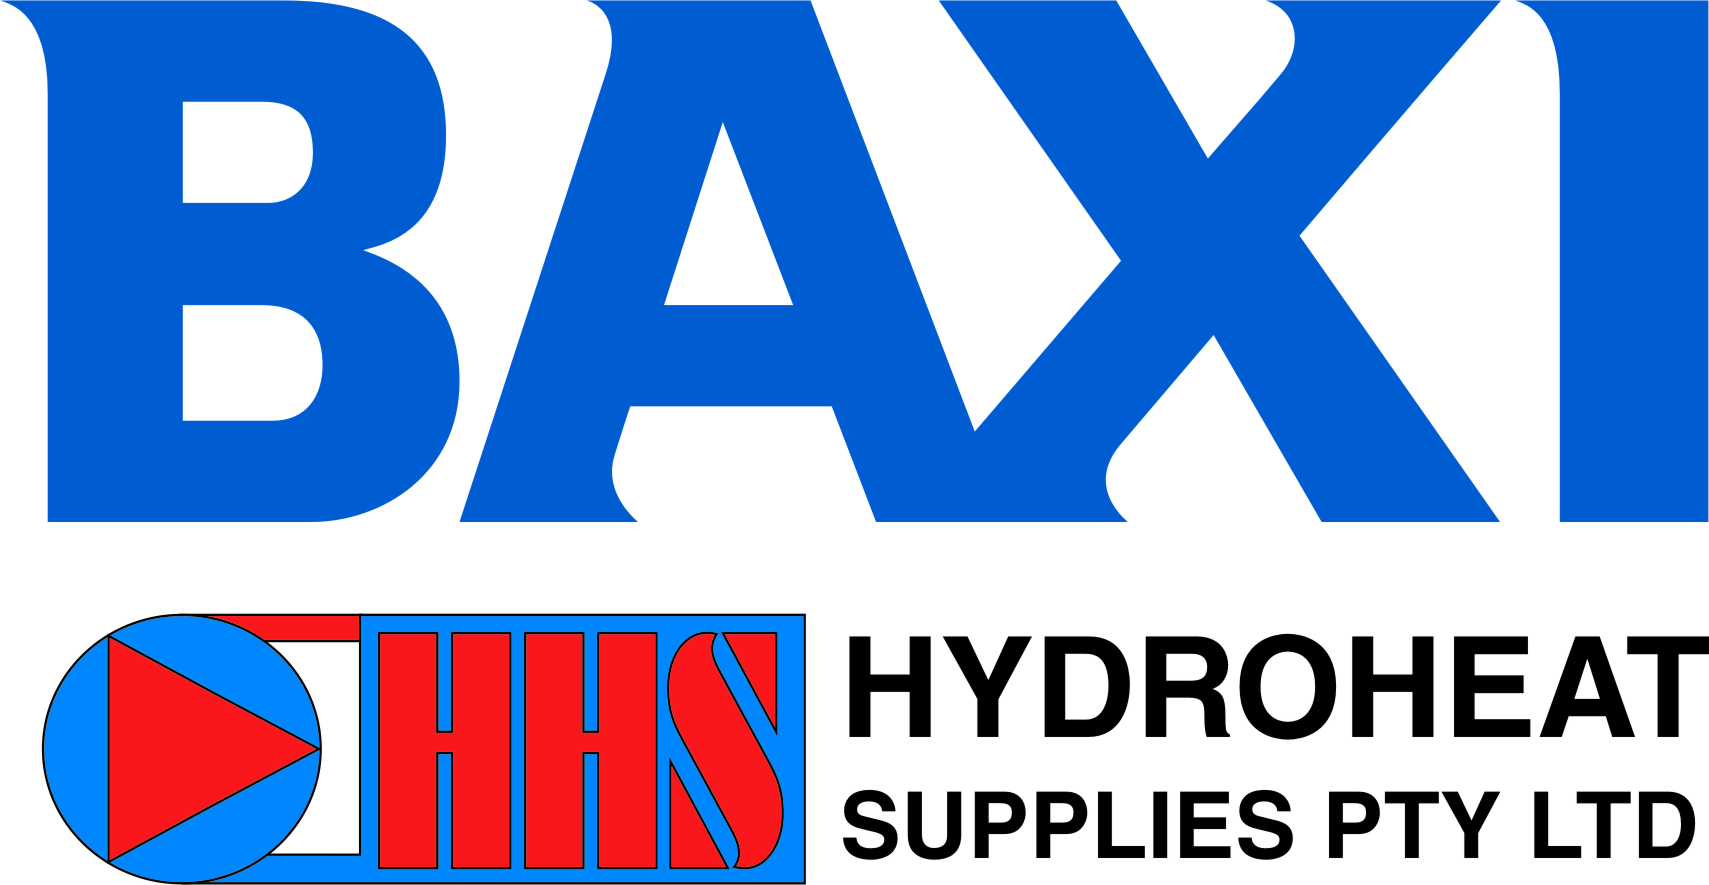 Hydroheat Supplies